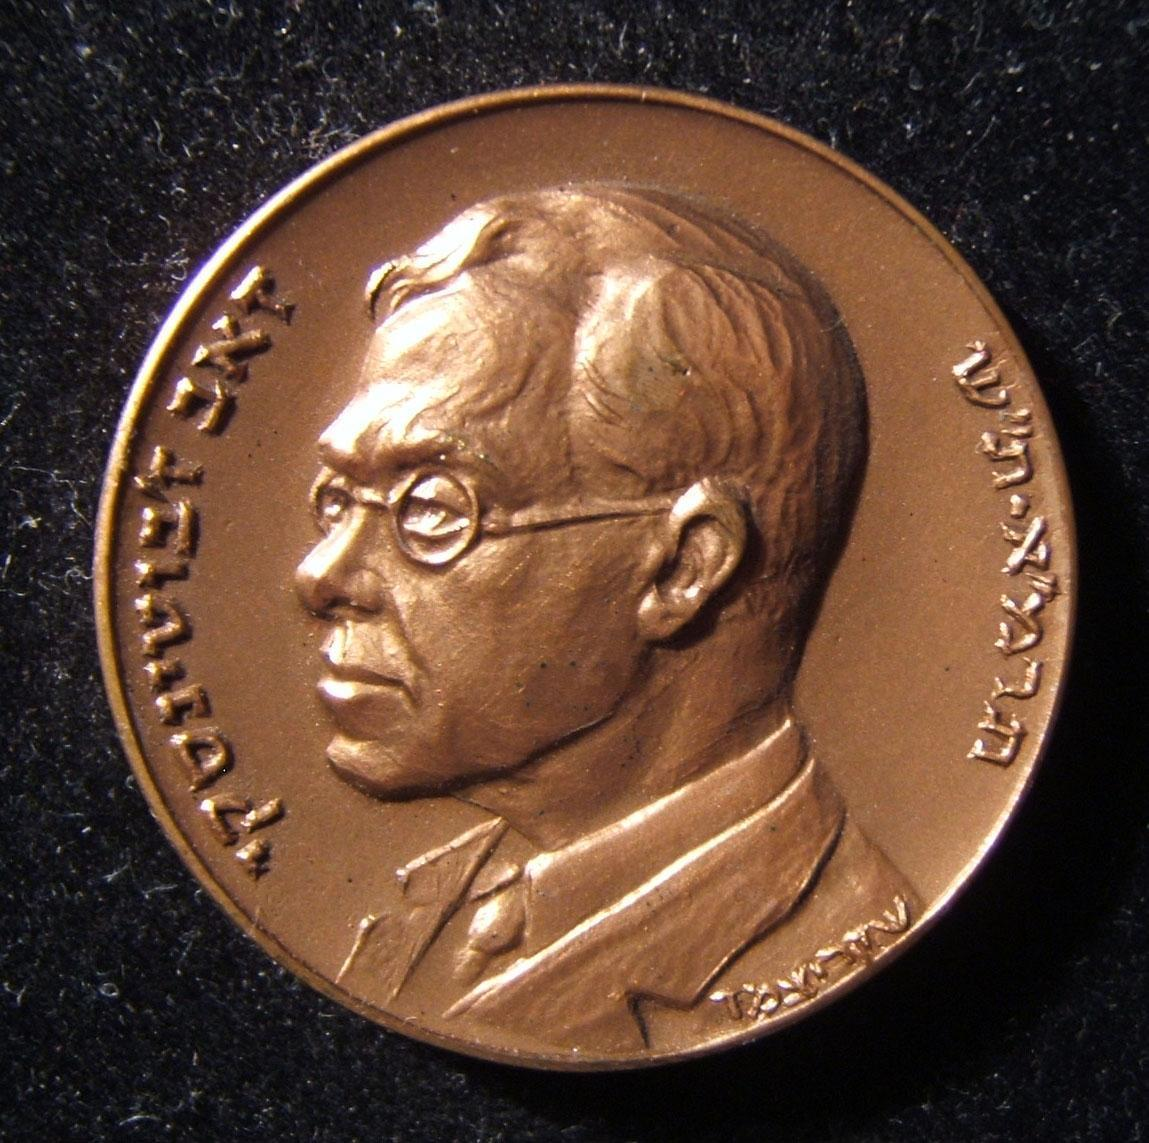 Israel: Ze'ev Jabotinsky 20th anniversary of death commemorative medal in bronze(?) 1960, by Shmuel Kretchmer; size: 31.25mm; weight: 17.3g; plain rim. Obverse depicts bas-relief o